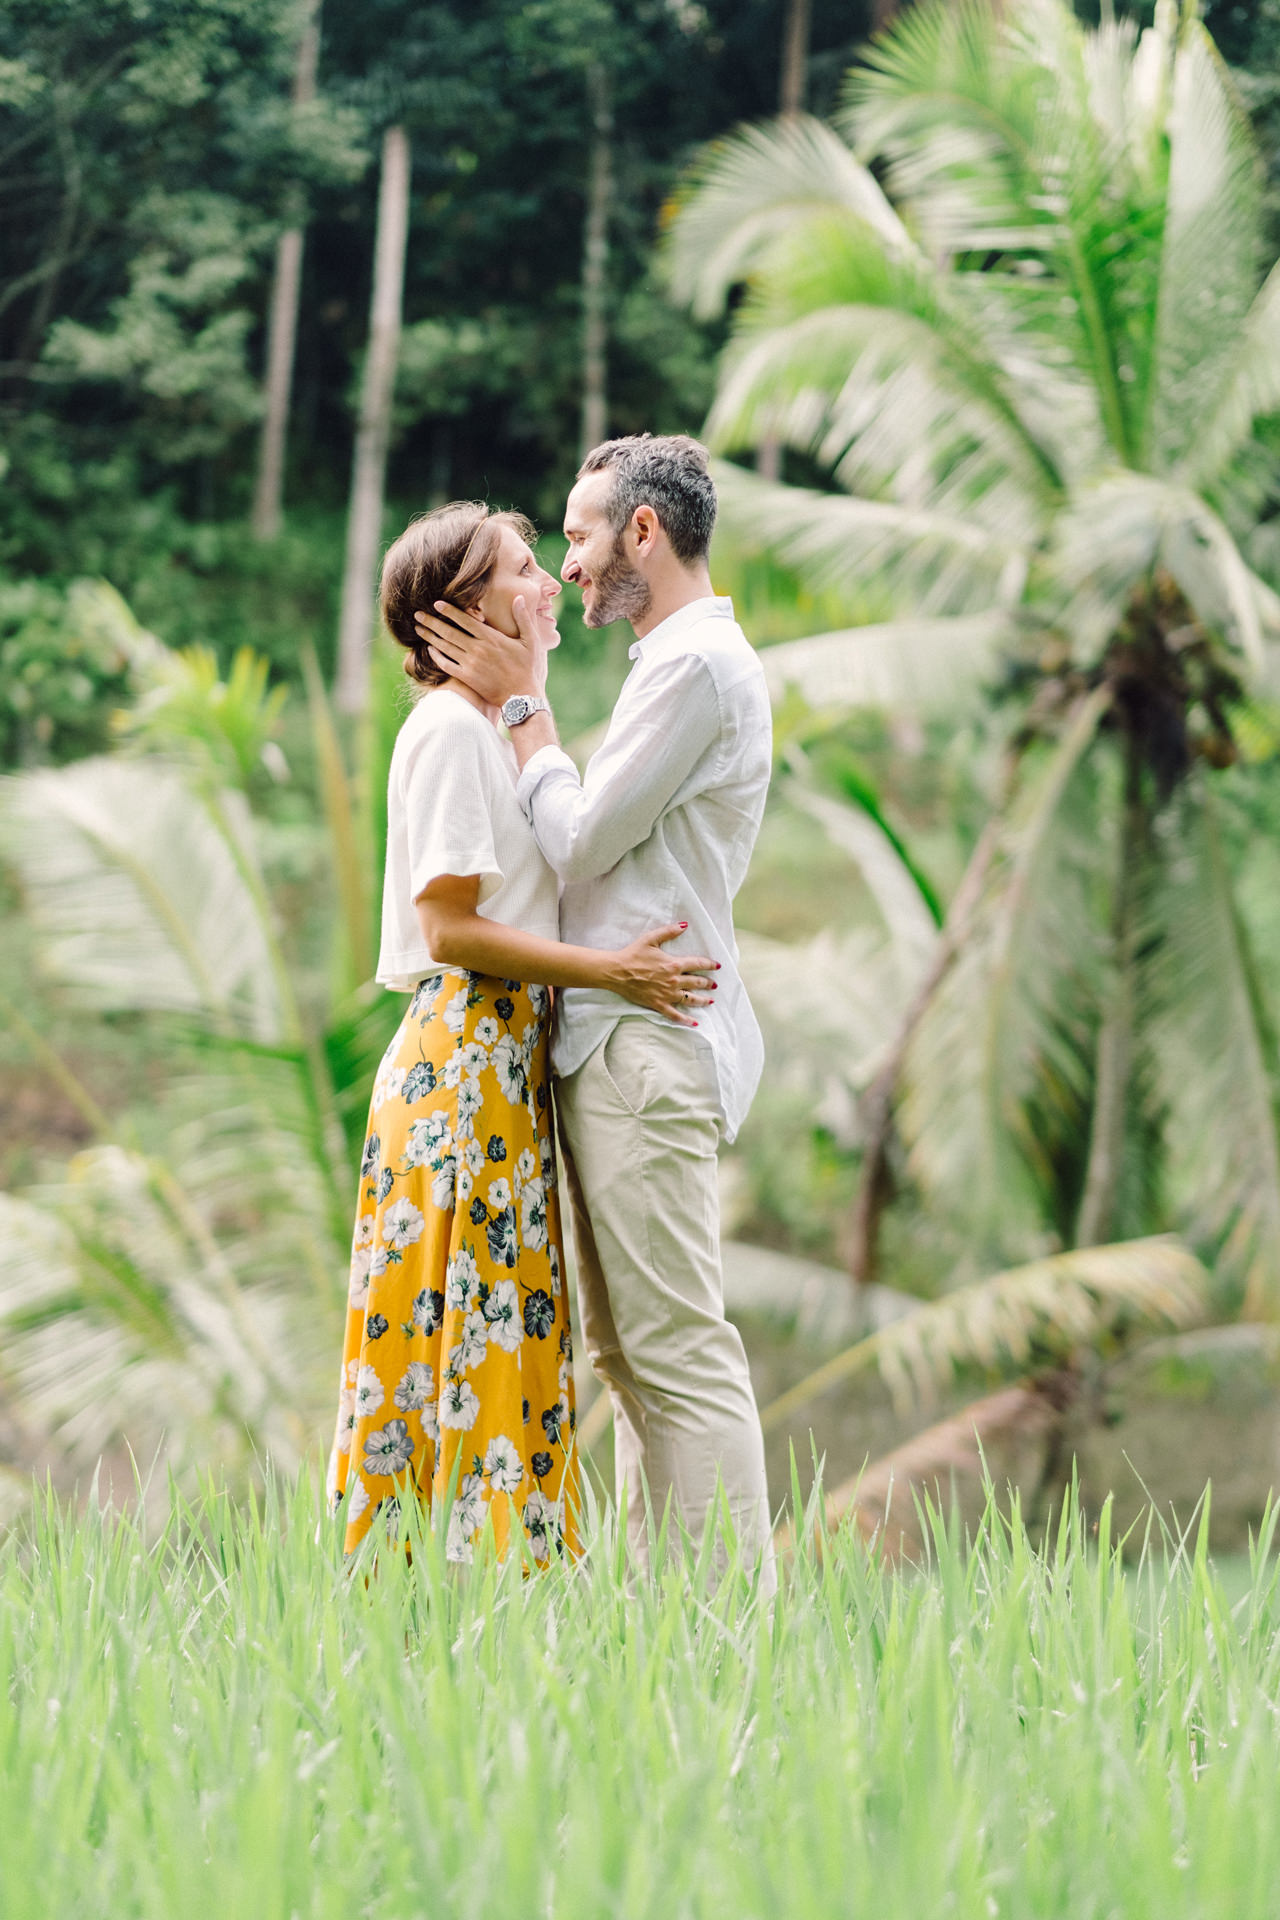 C&F: Casual Engagement Session in Tegalalang Rice Terraces Lush Greenery 8